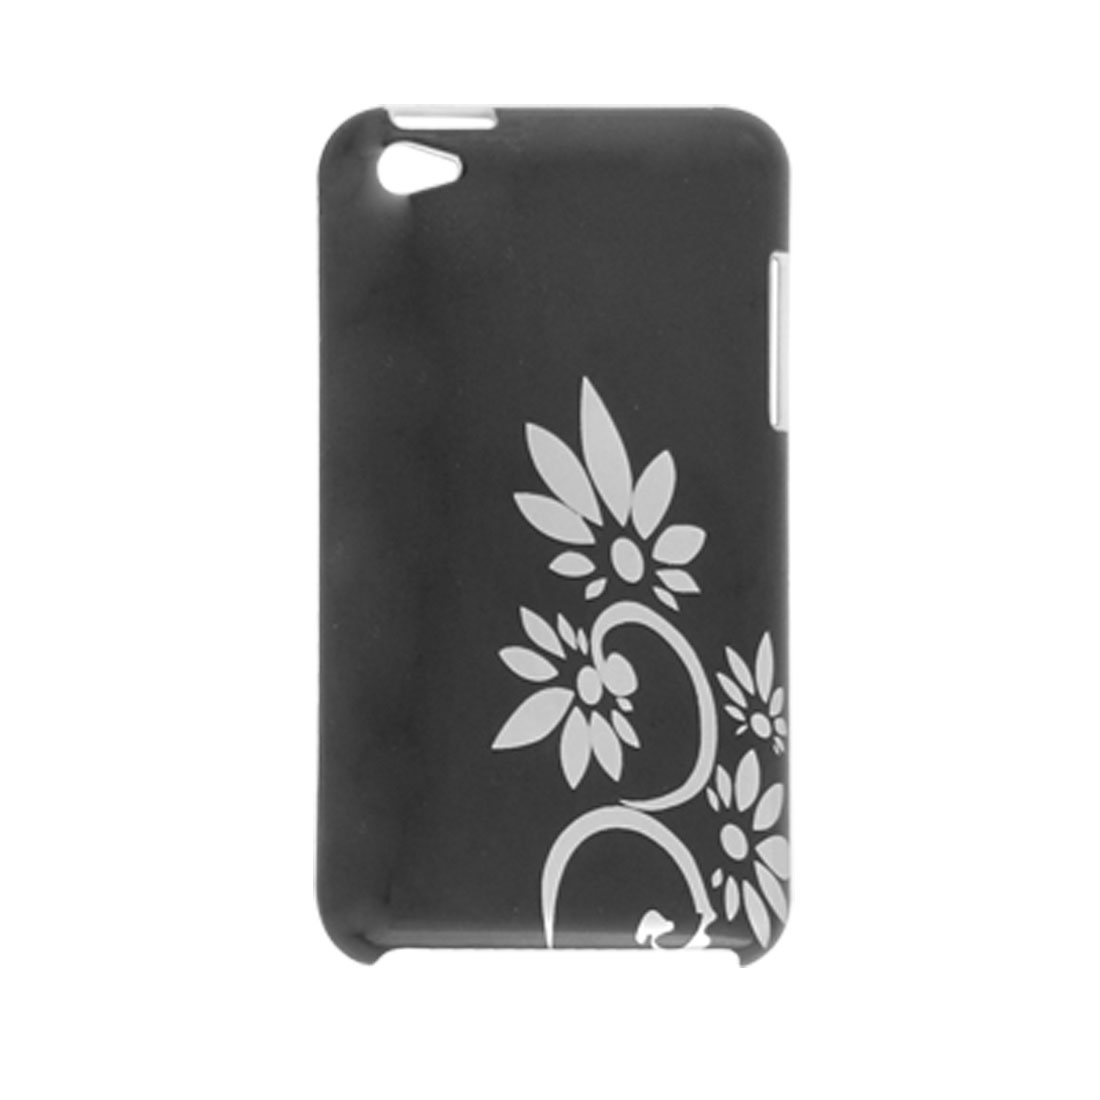 IMD Silver Tone Flower Black Plastic Back Cover for iPod Touch 4G